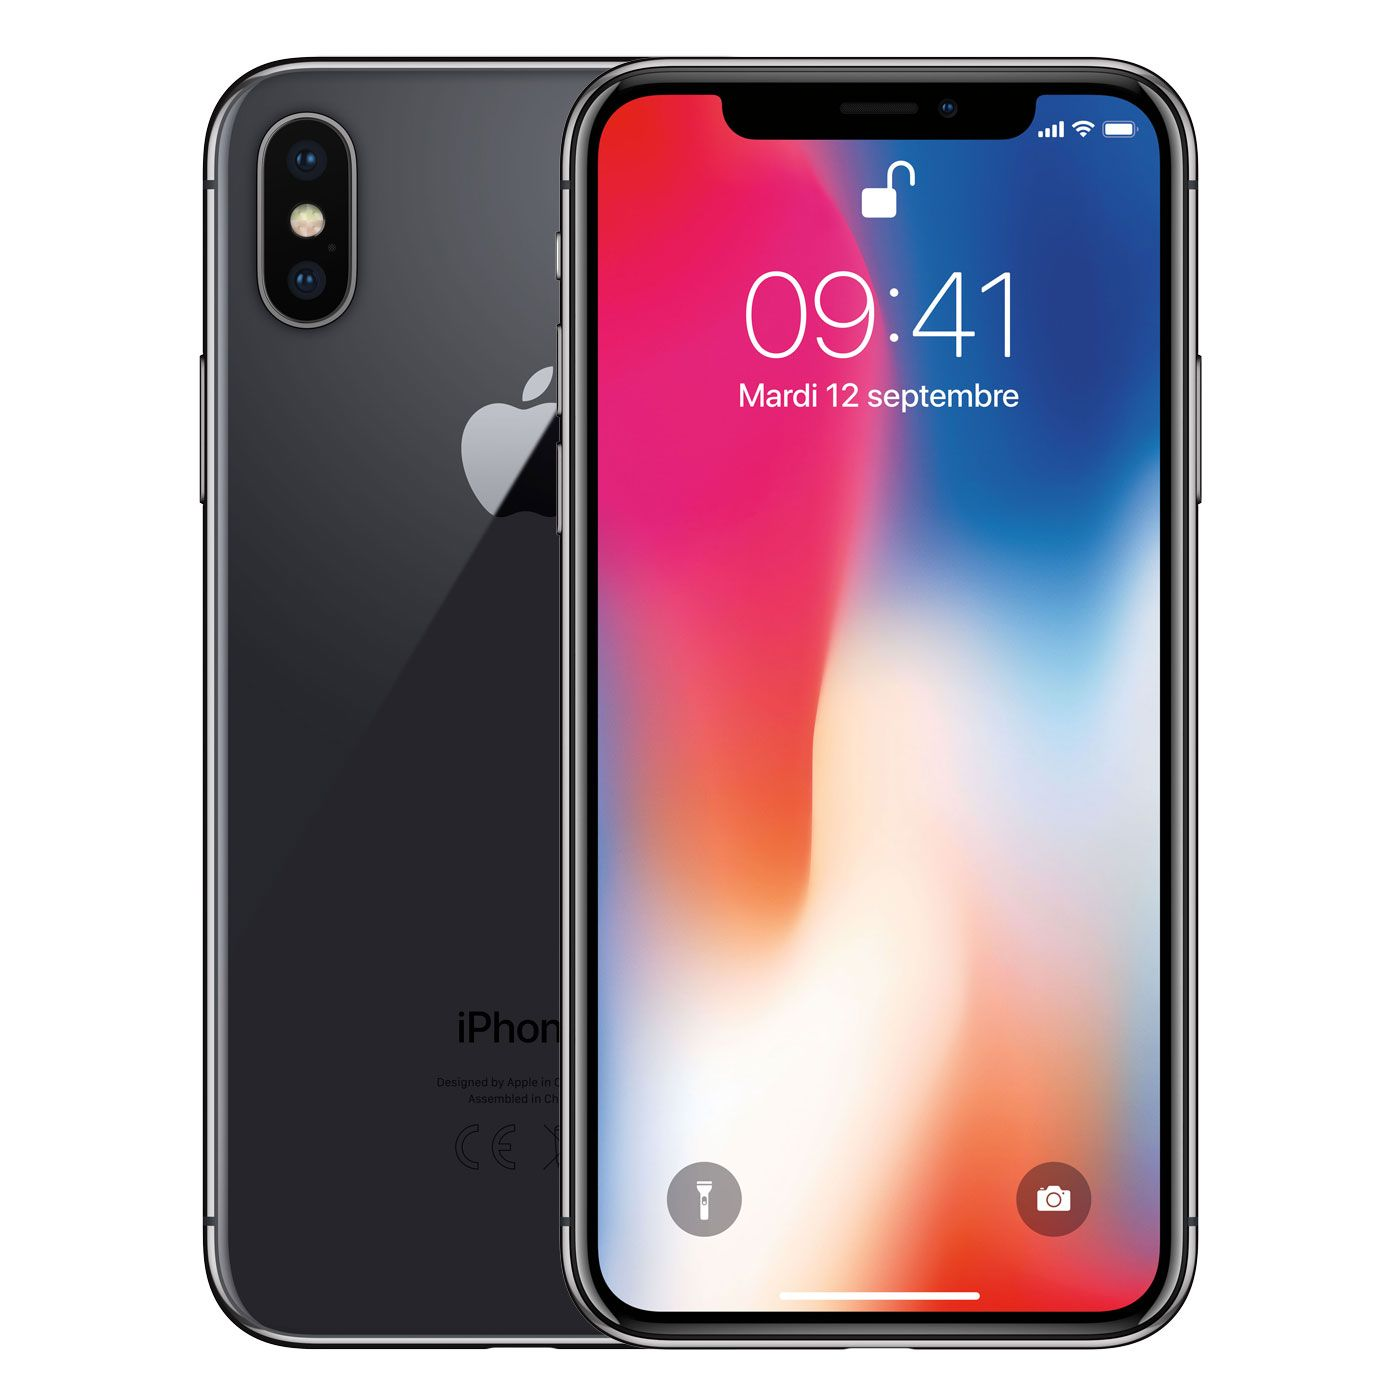 apple iphone x 256 go gris sid ral t l phones portables acheter au meilleur prix. Black Bedroom Furniture Sets. Home Design Ideas